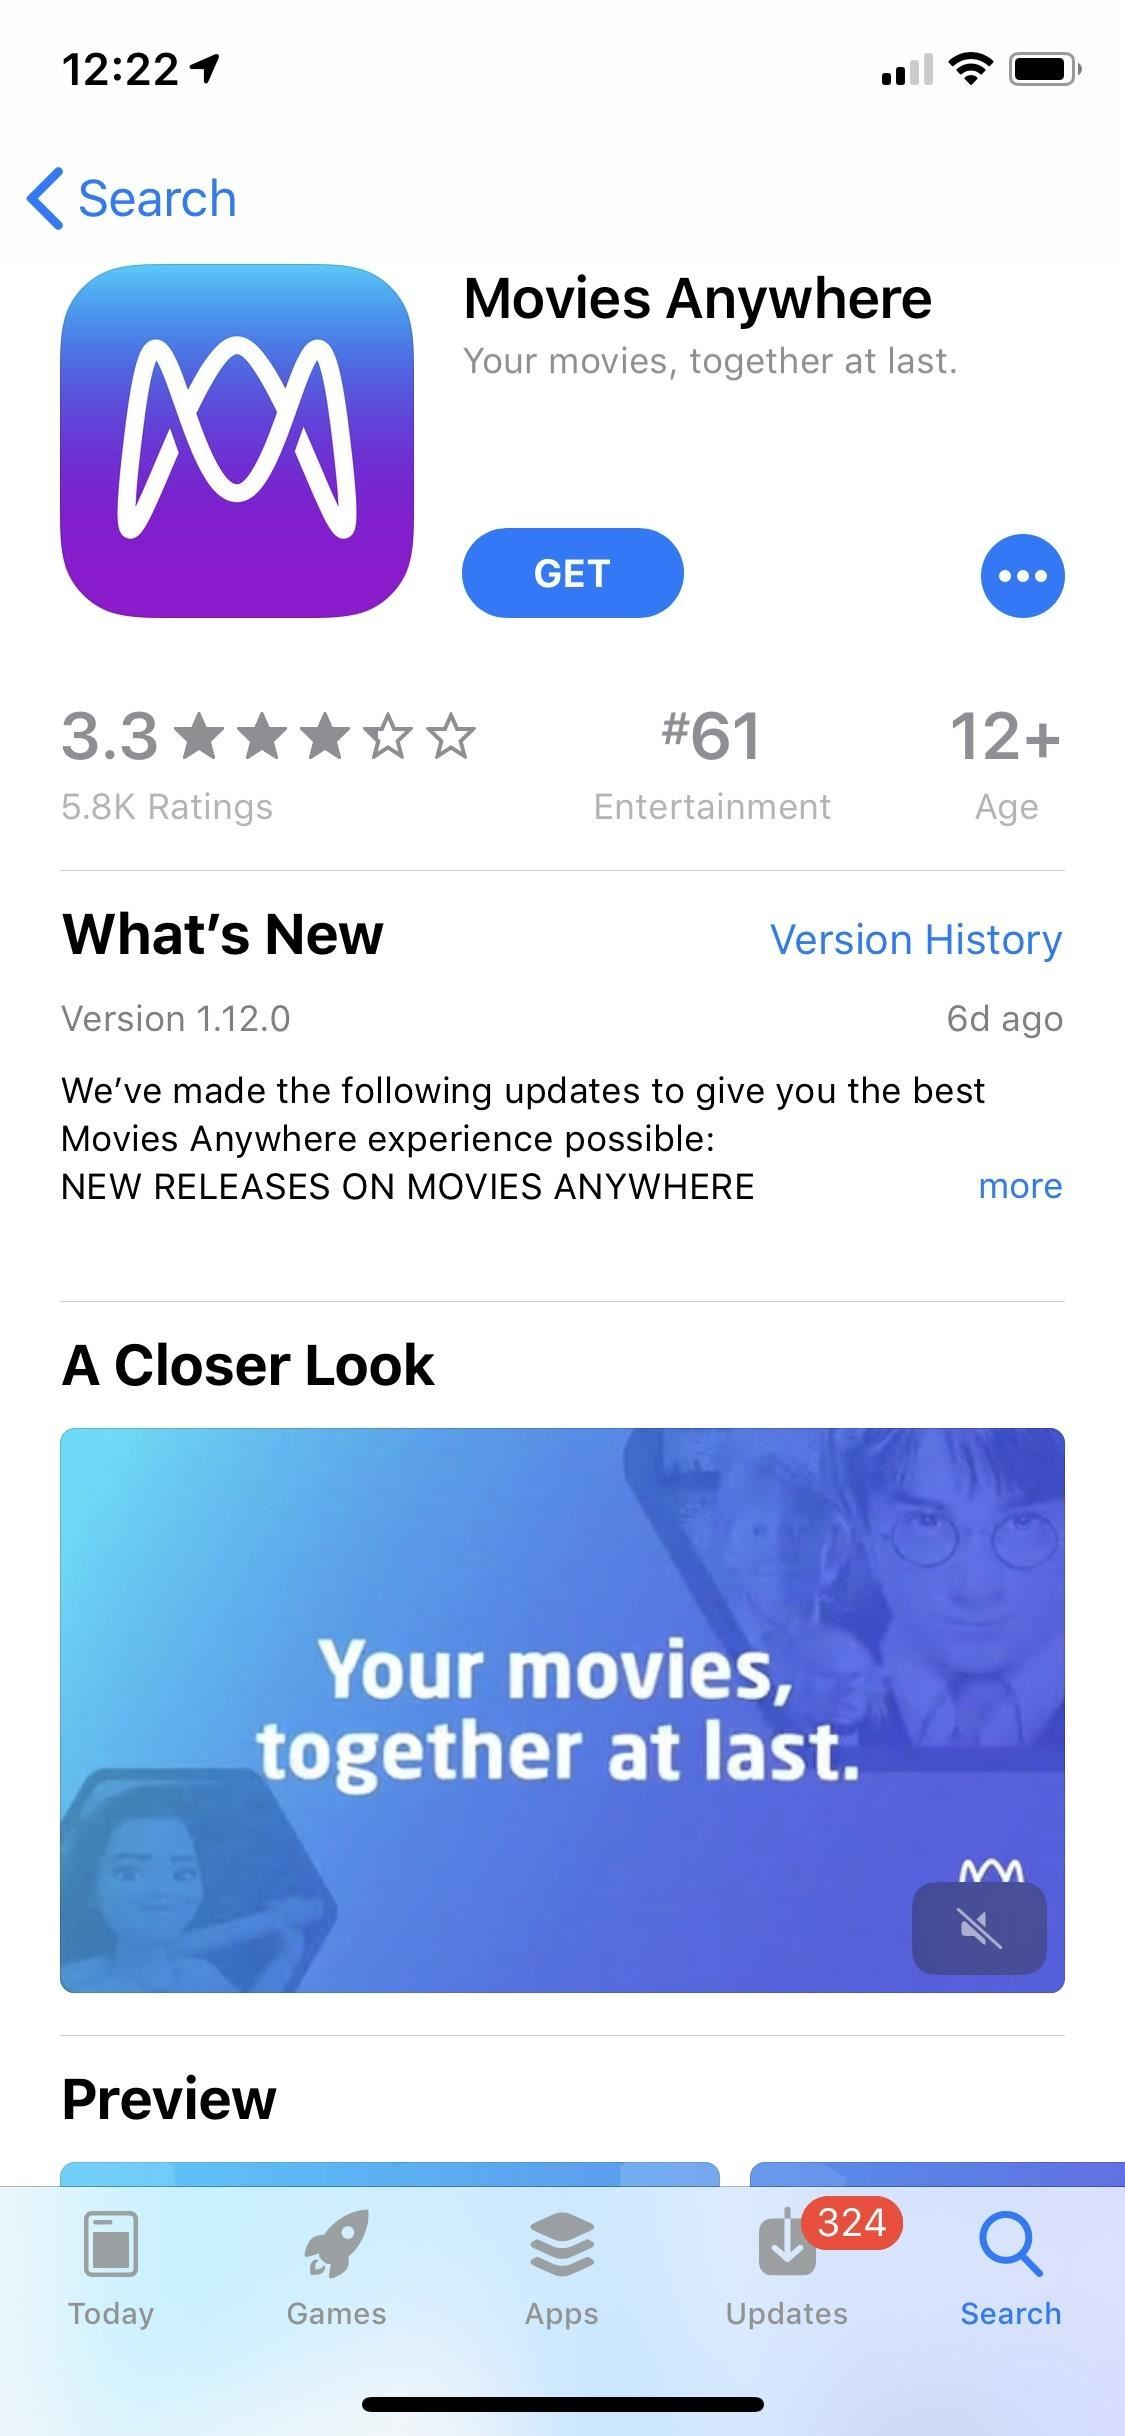 How to Collect All Your Purchased Digital Movies in One Place on Android & iOS